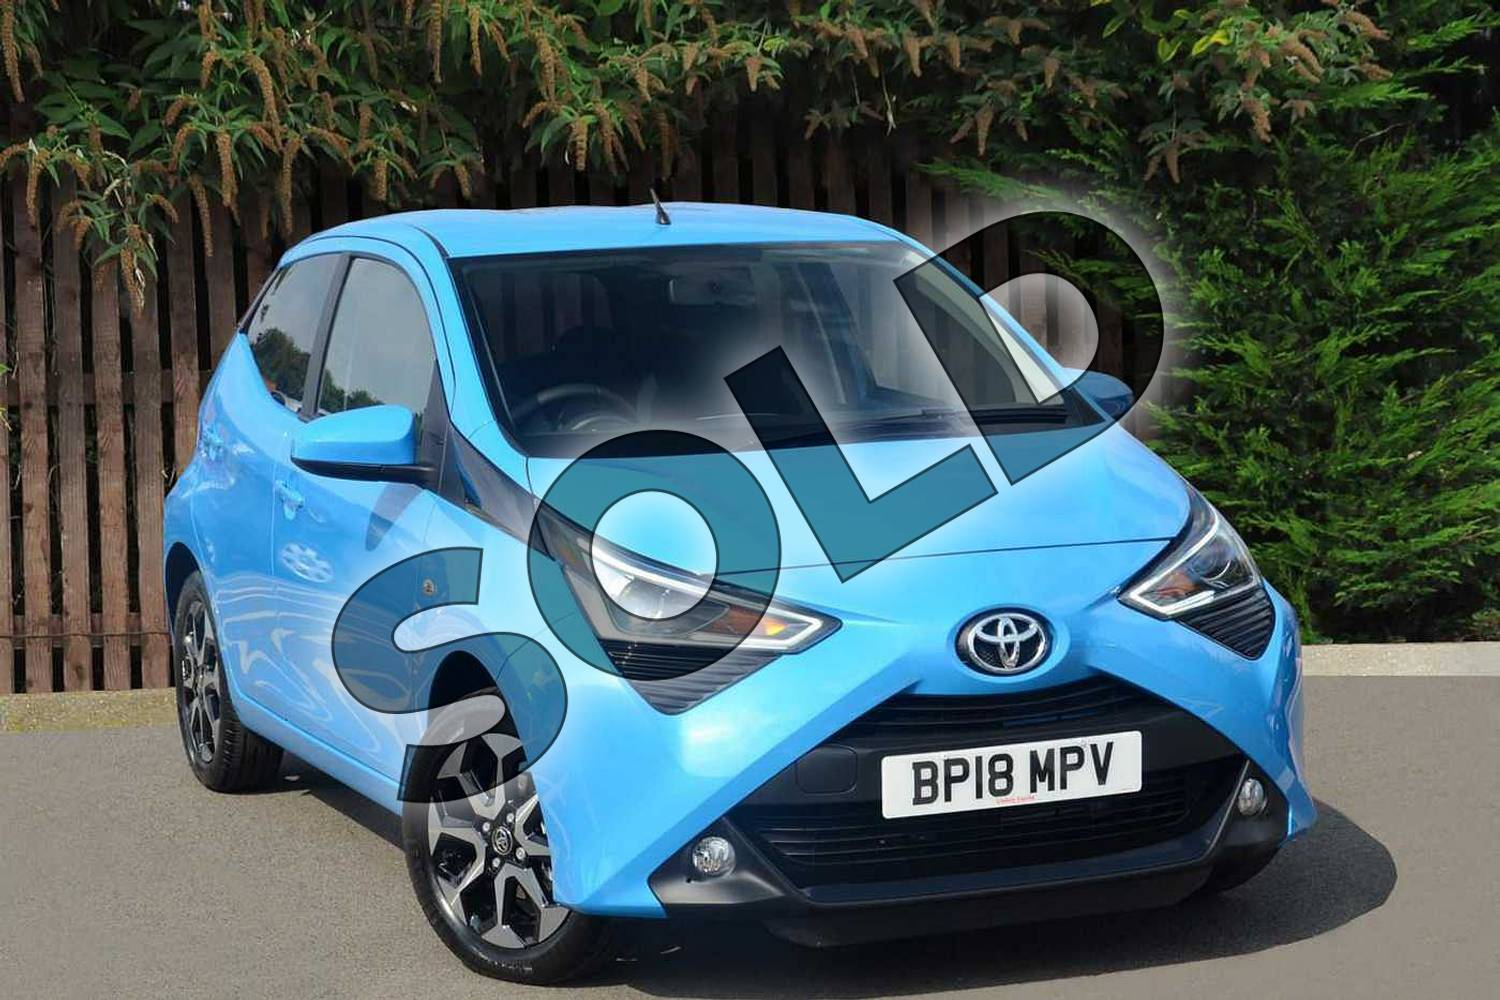 2018 Toyota Aygo Hatchback 1.0 VVT-i X-Plore 5dr in Cyan Splash at Listers Toyota Coventry